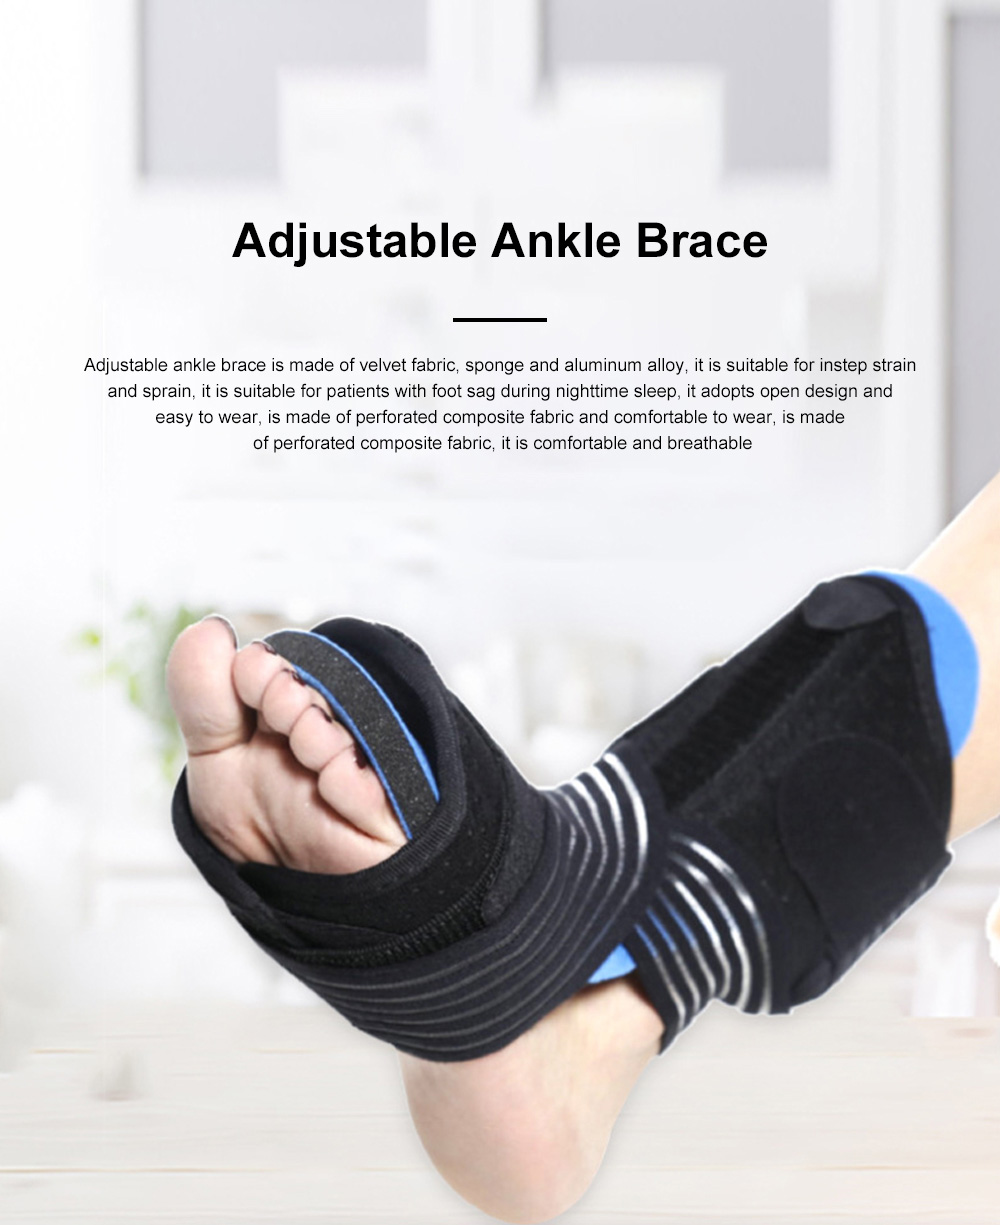 Ankle Support Adjustable Ankle Brace Breathable Nylon Material Highly Elastic Perfect For The Ankle Tendons Correcting 0